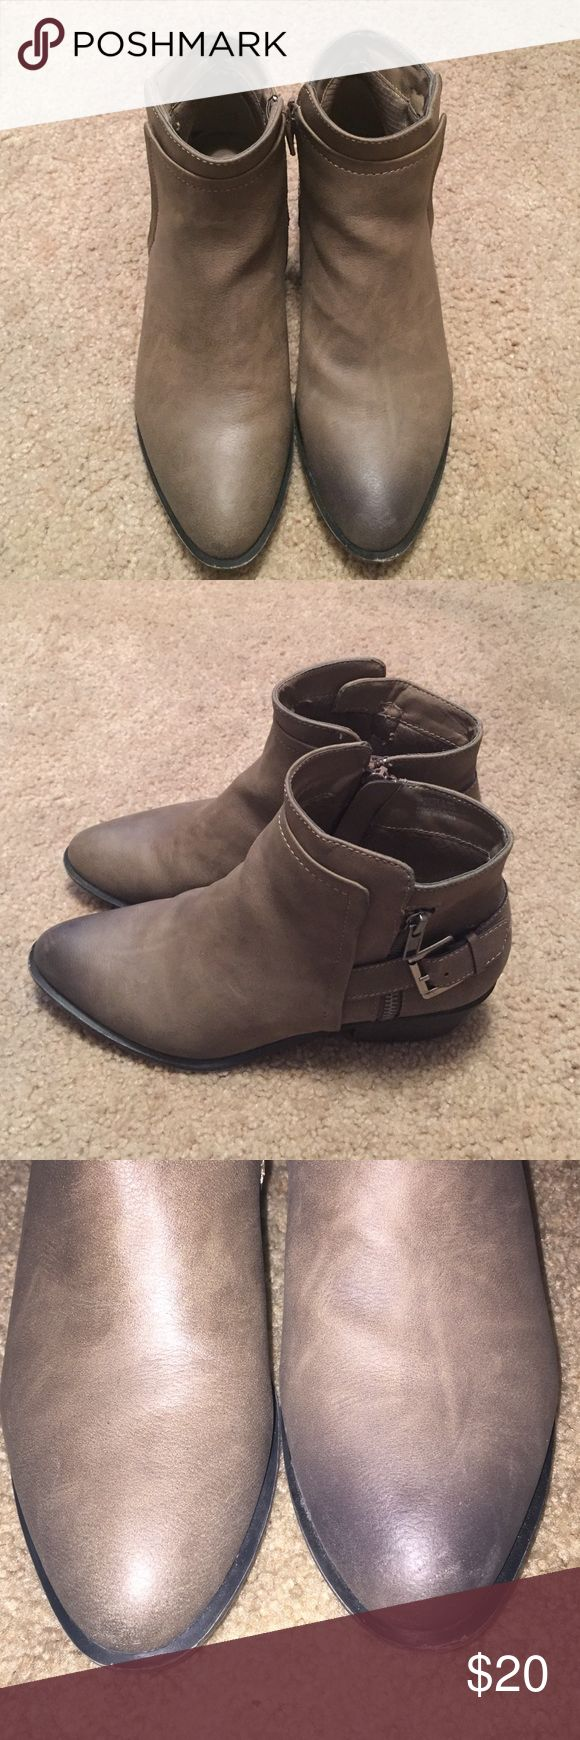 """Madden Girl booties Worn only twice, Madden Girl sandy grey with buckle detail booties. There's discolor on the left shoe toe area. That specific show was on display. I used flash to fully capture discolor. Price reflects defect. Measure 9.5"""" Madden Girl Shoes Ankle Boots & Booties"""